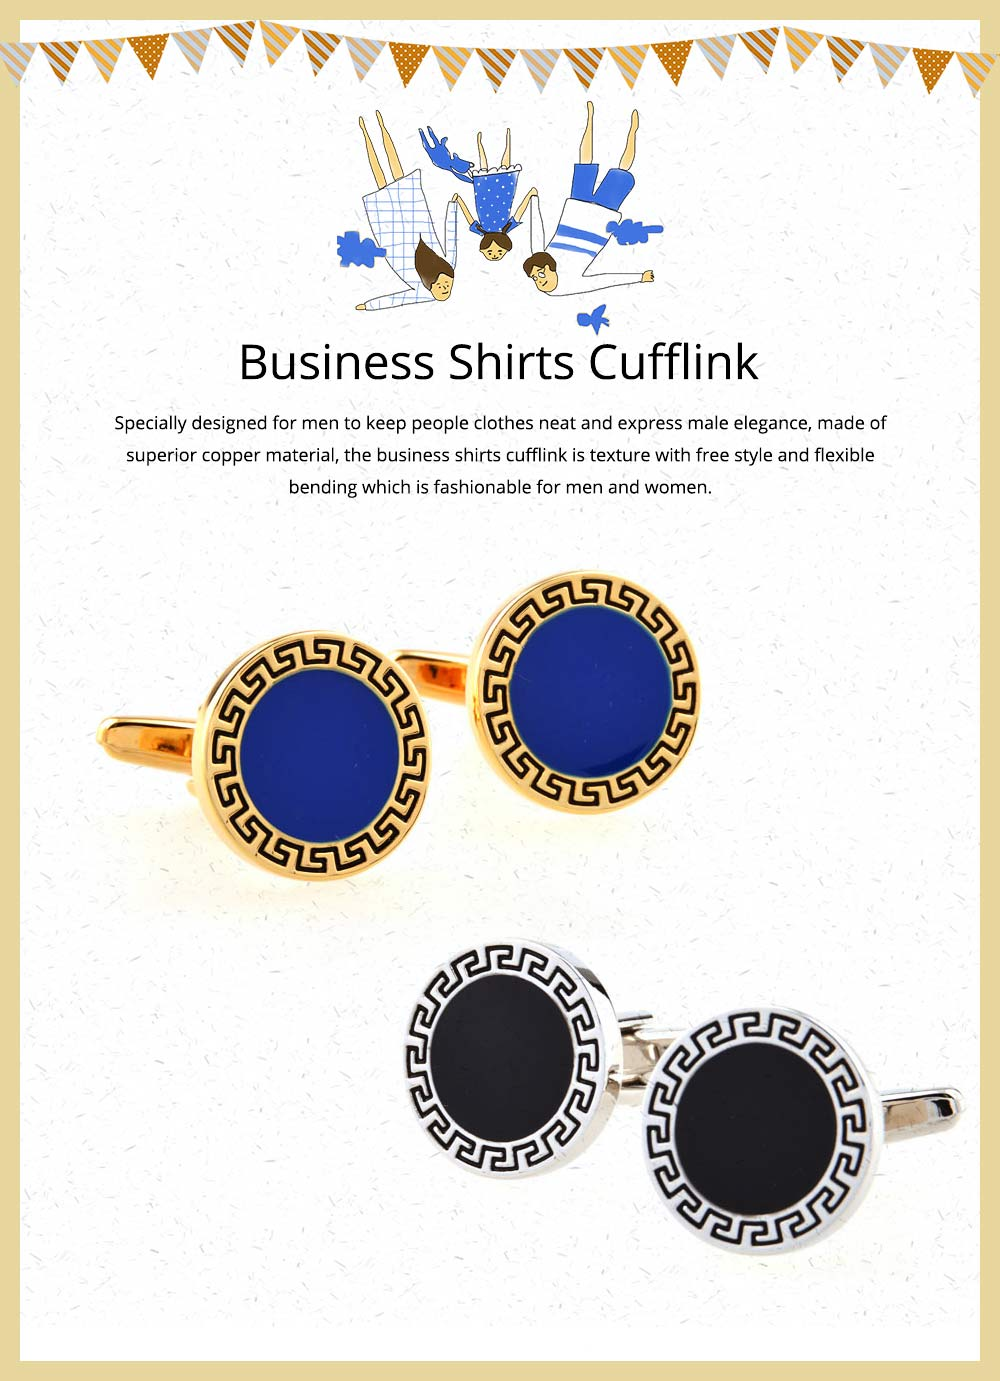 Business Shirts Cufflink of French Style, Multiple Style & Classical Cufflink, Texture Fashion Buttons 0